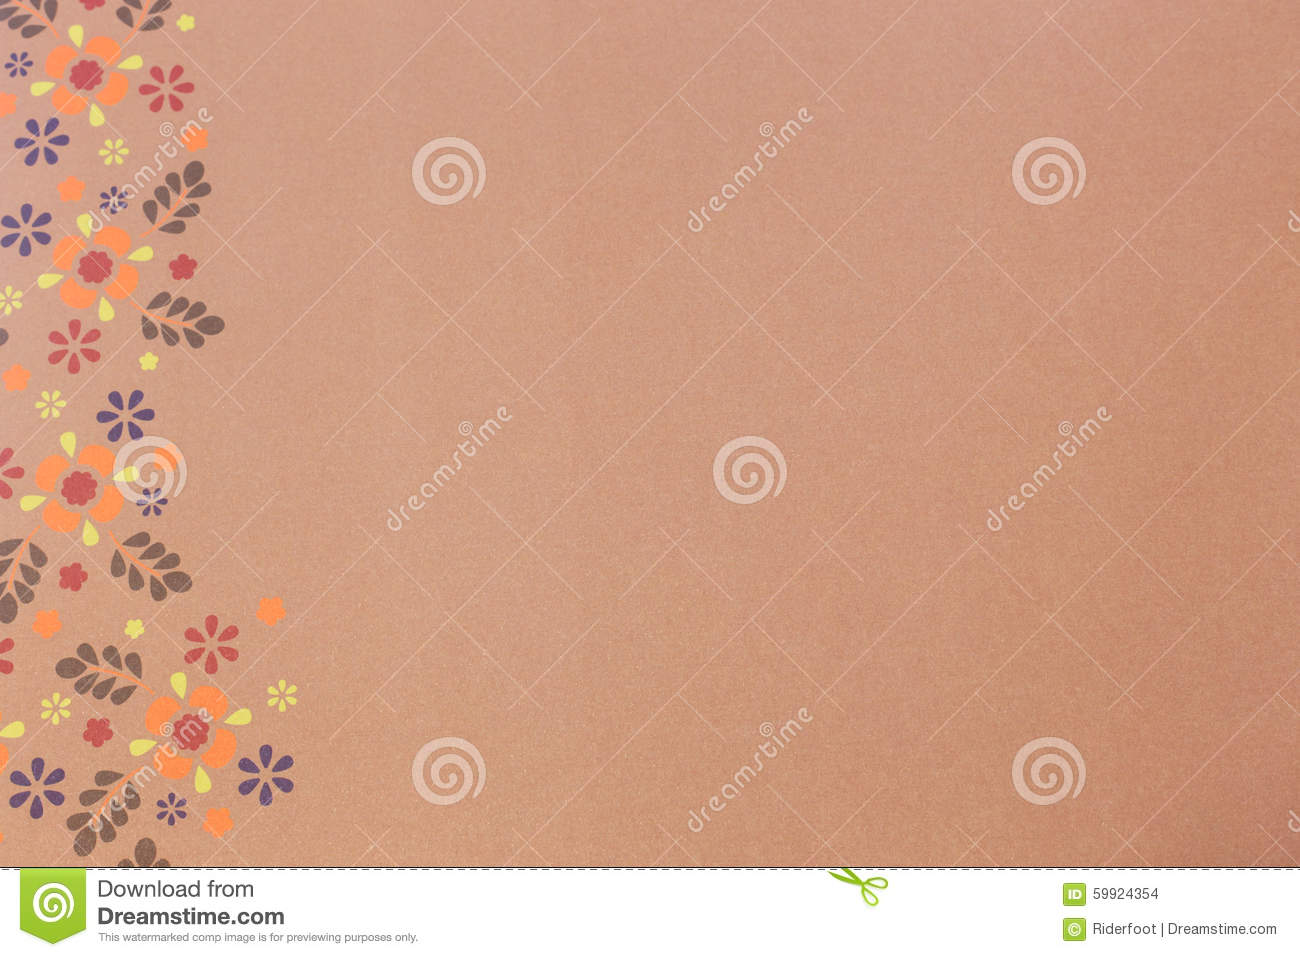 Paper With Flowers For Scrapbooking As A Background Stock